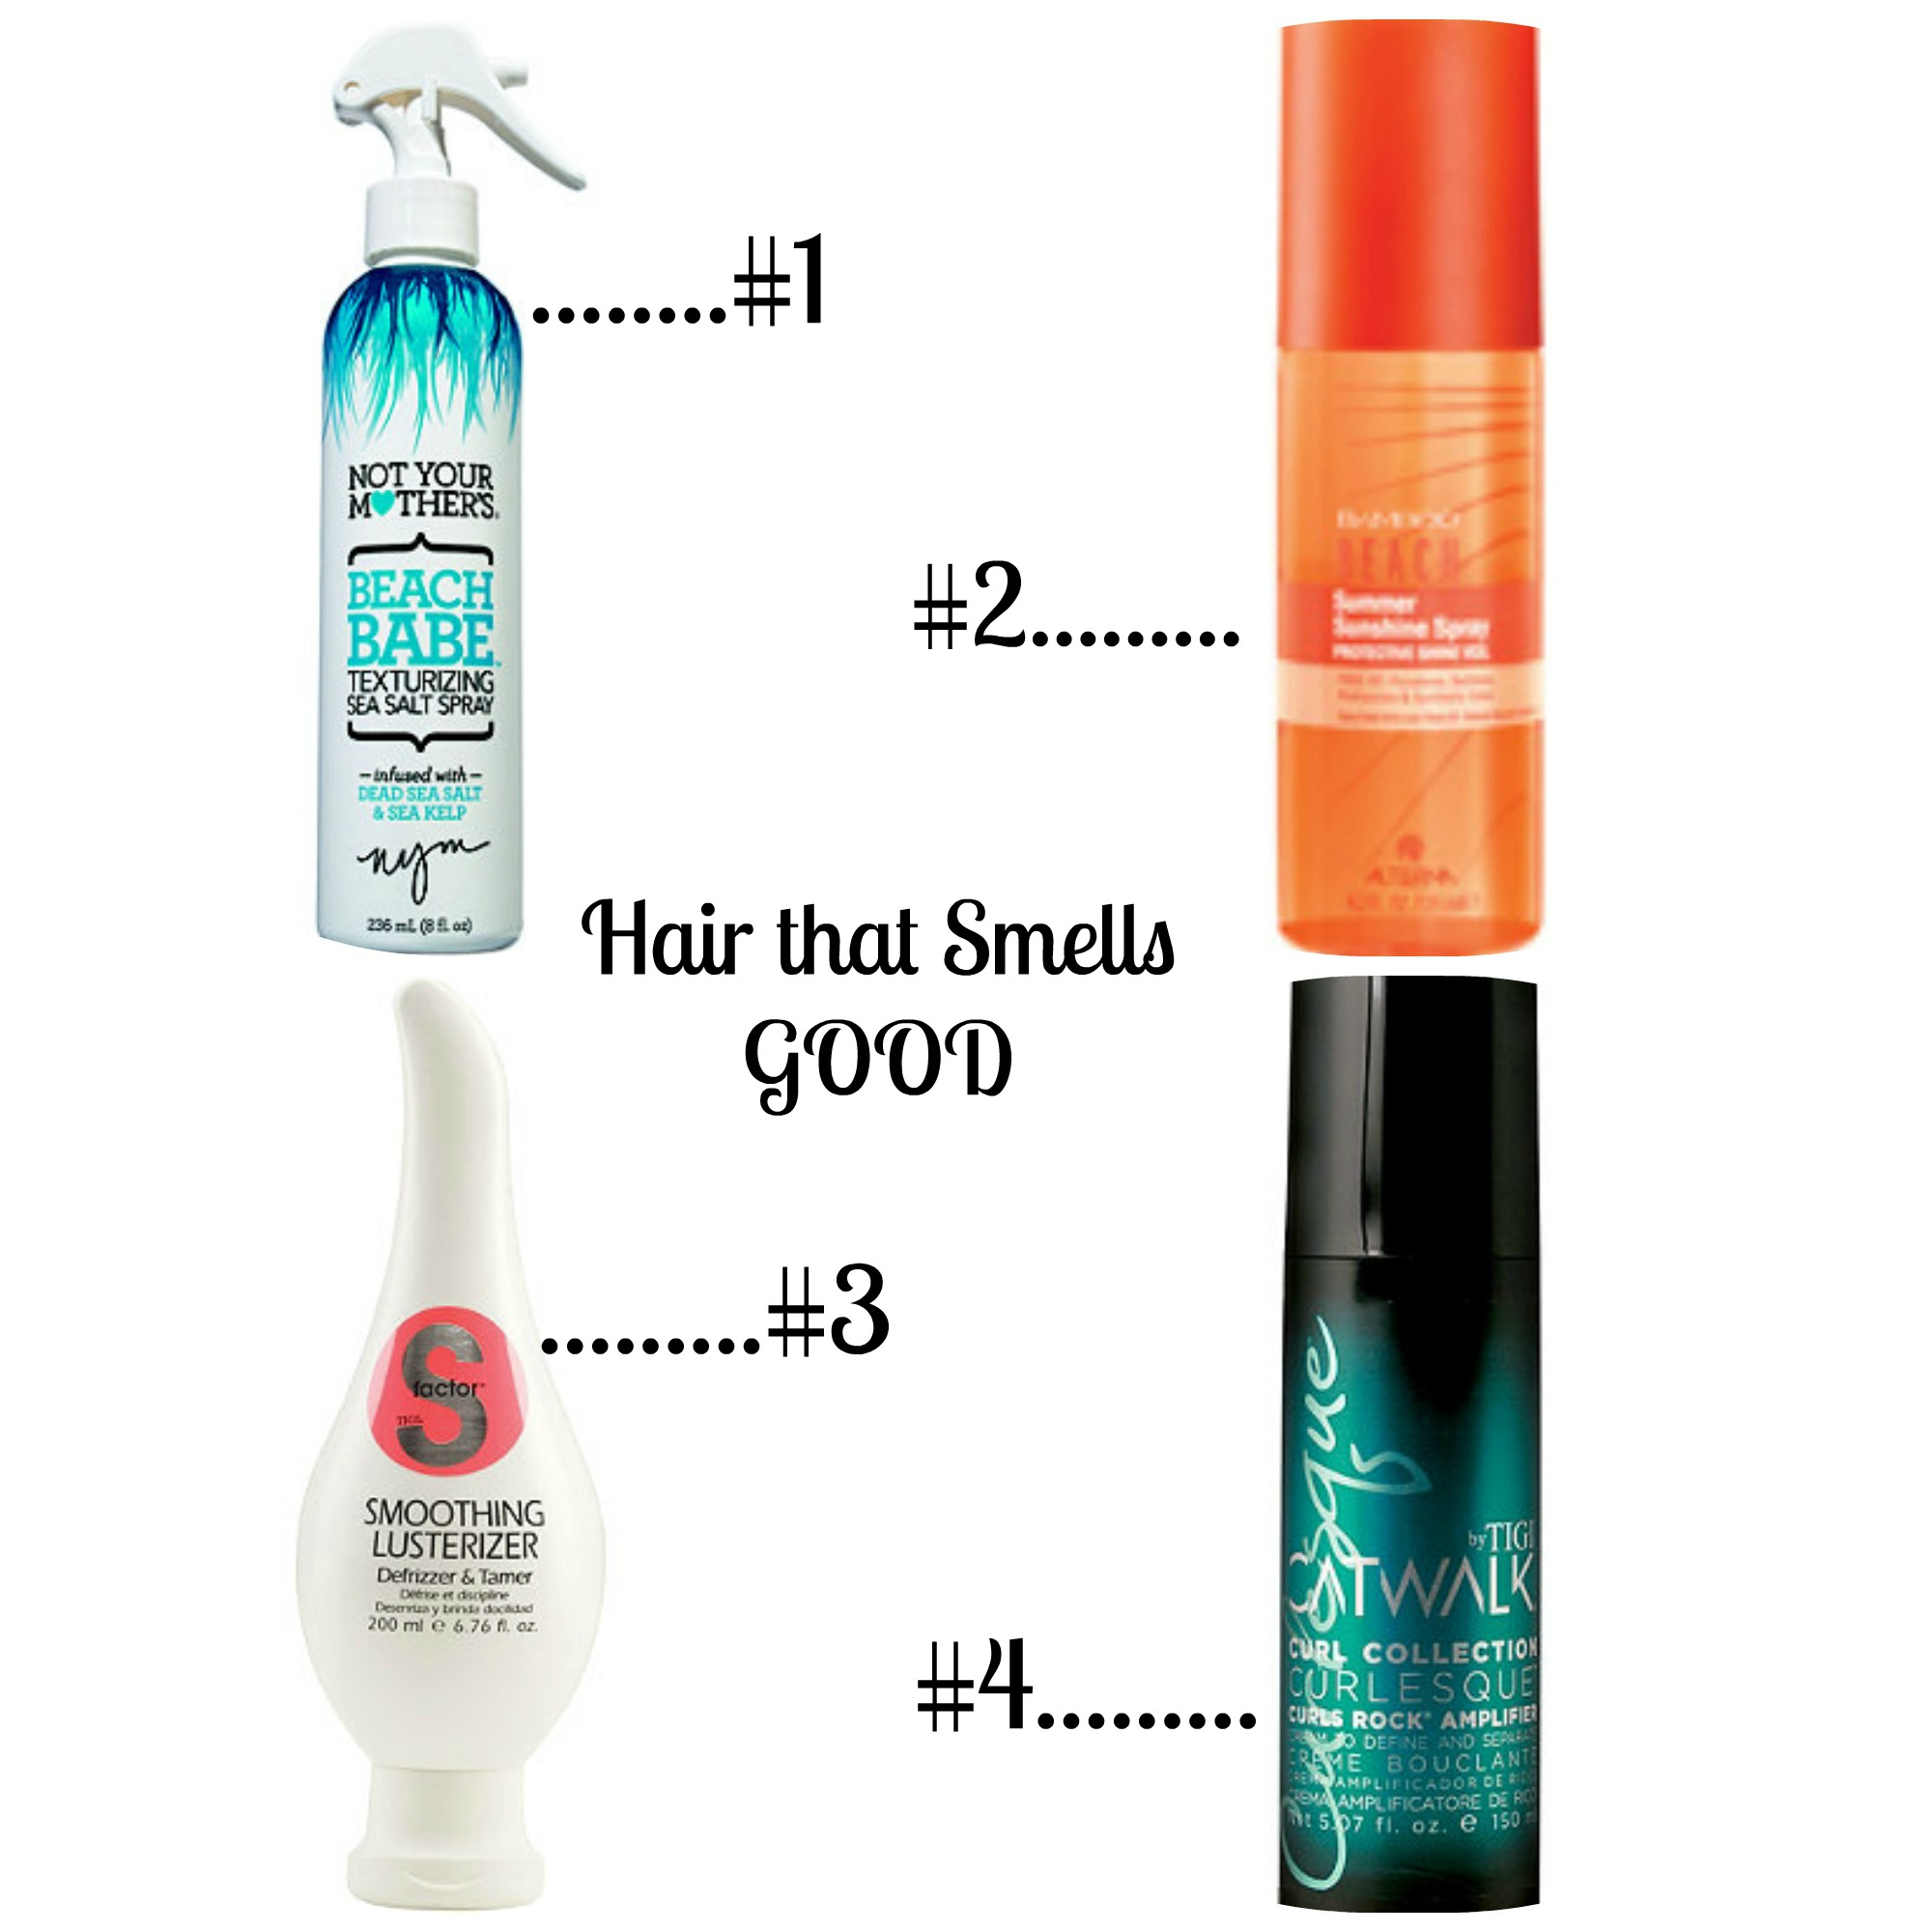 Products That Make Your Hair Smell Good